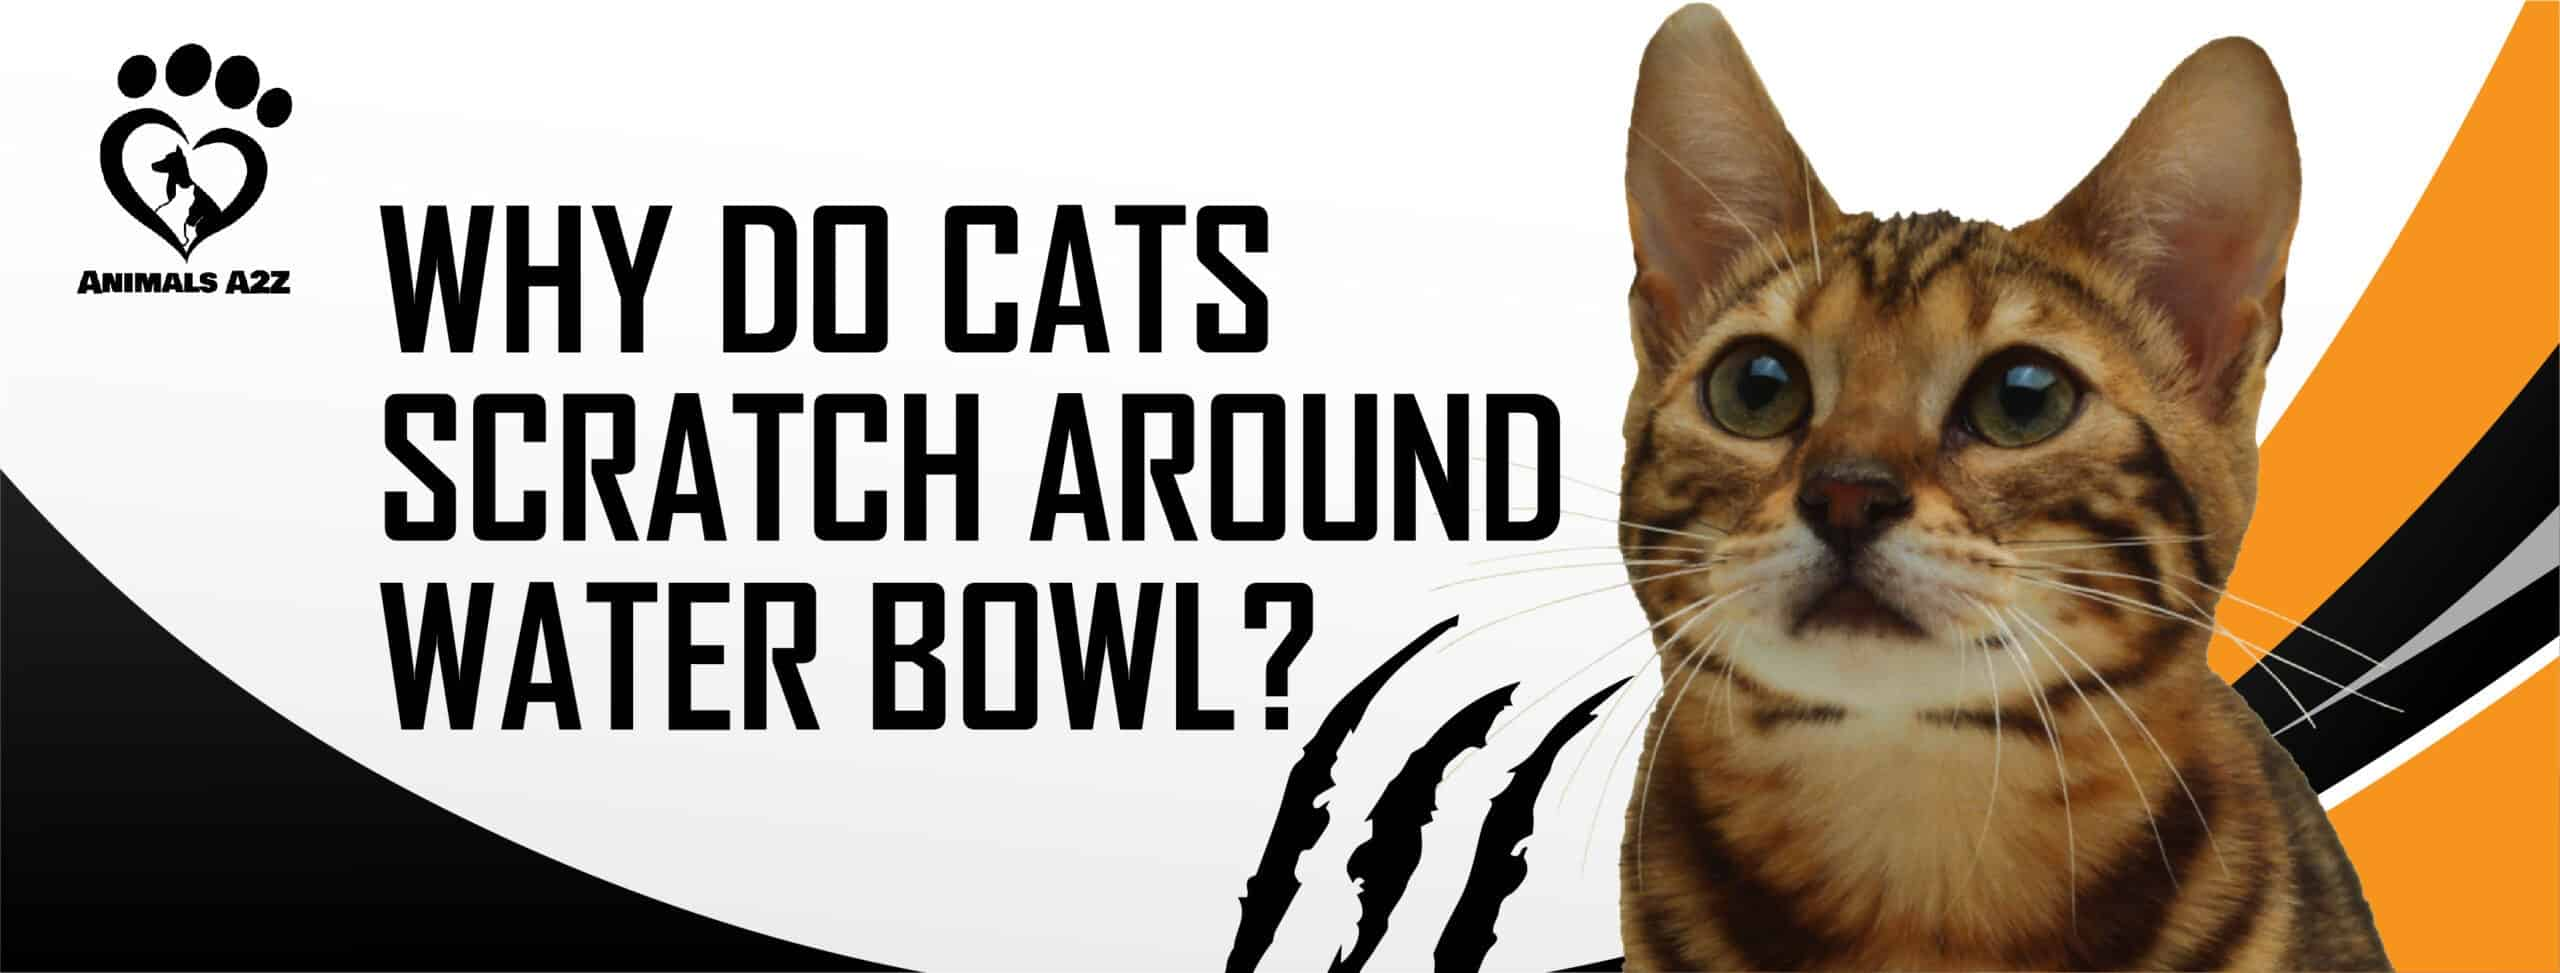 Why do cats scratch around water bowl